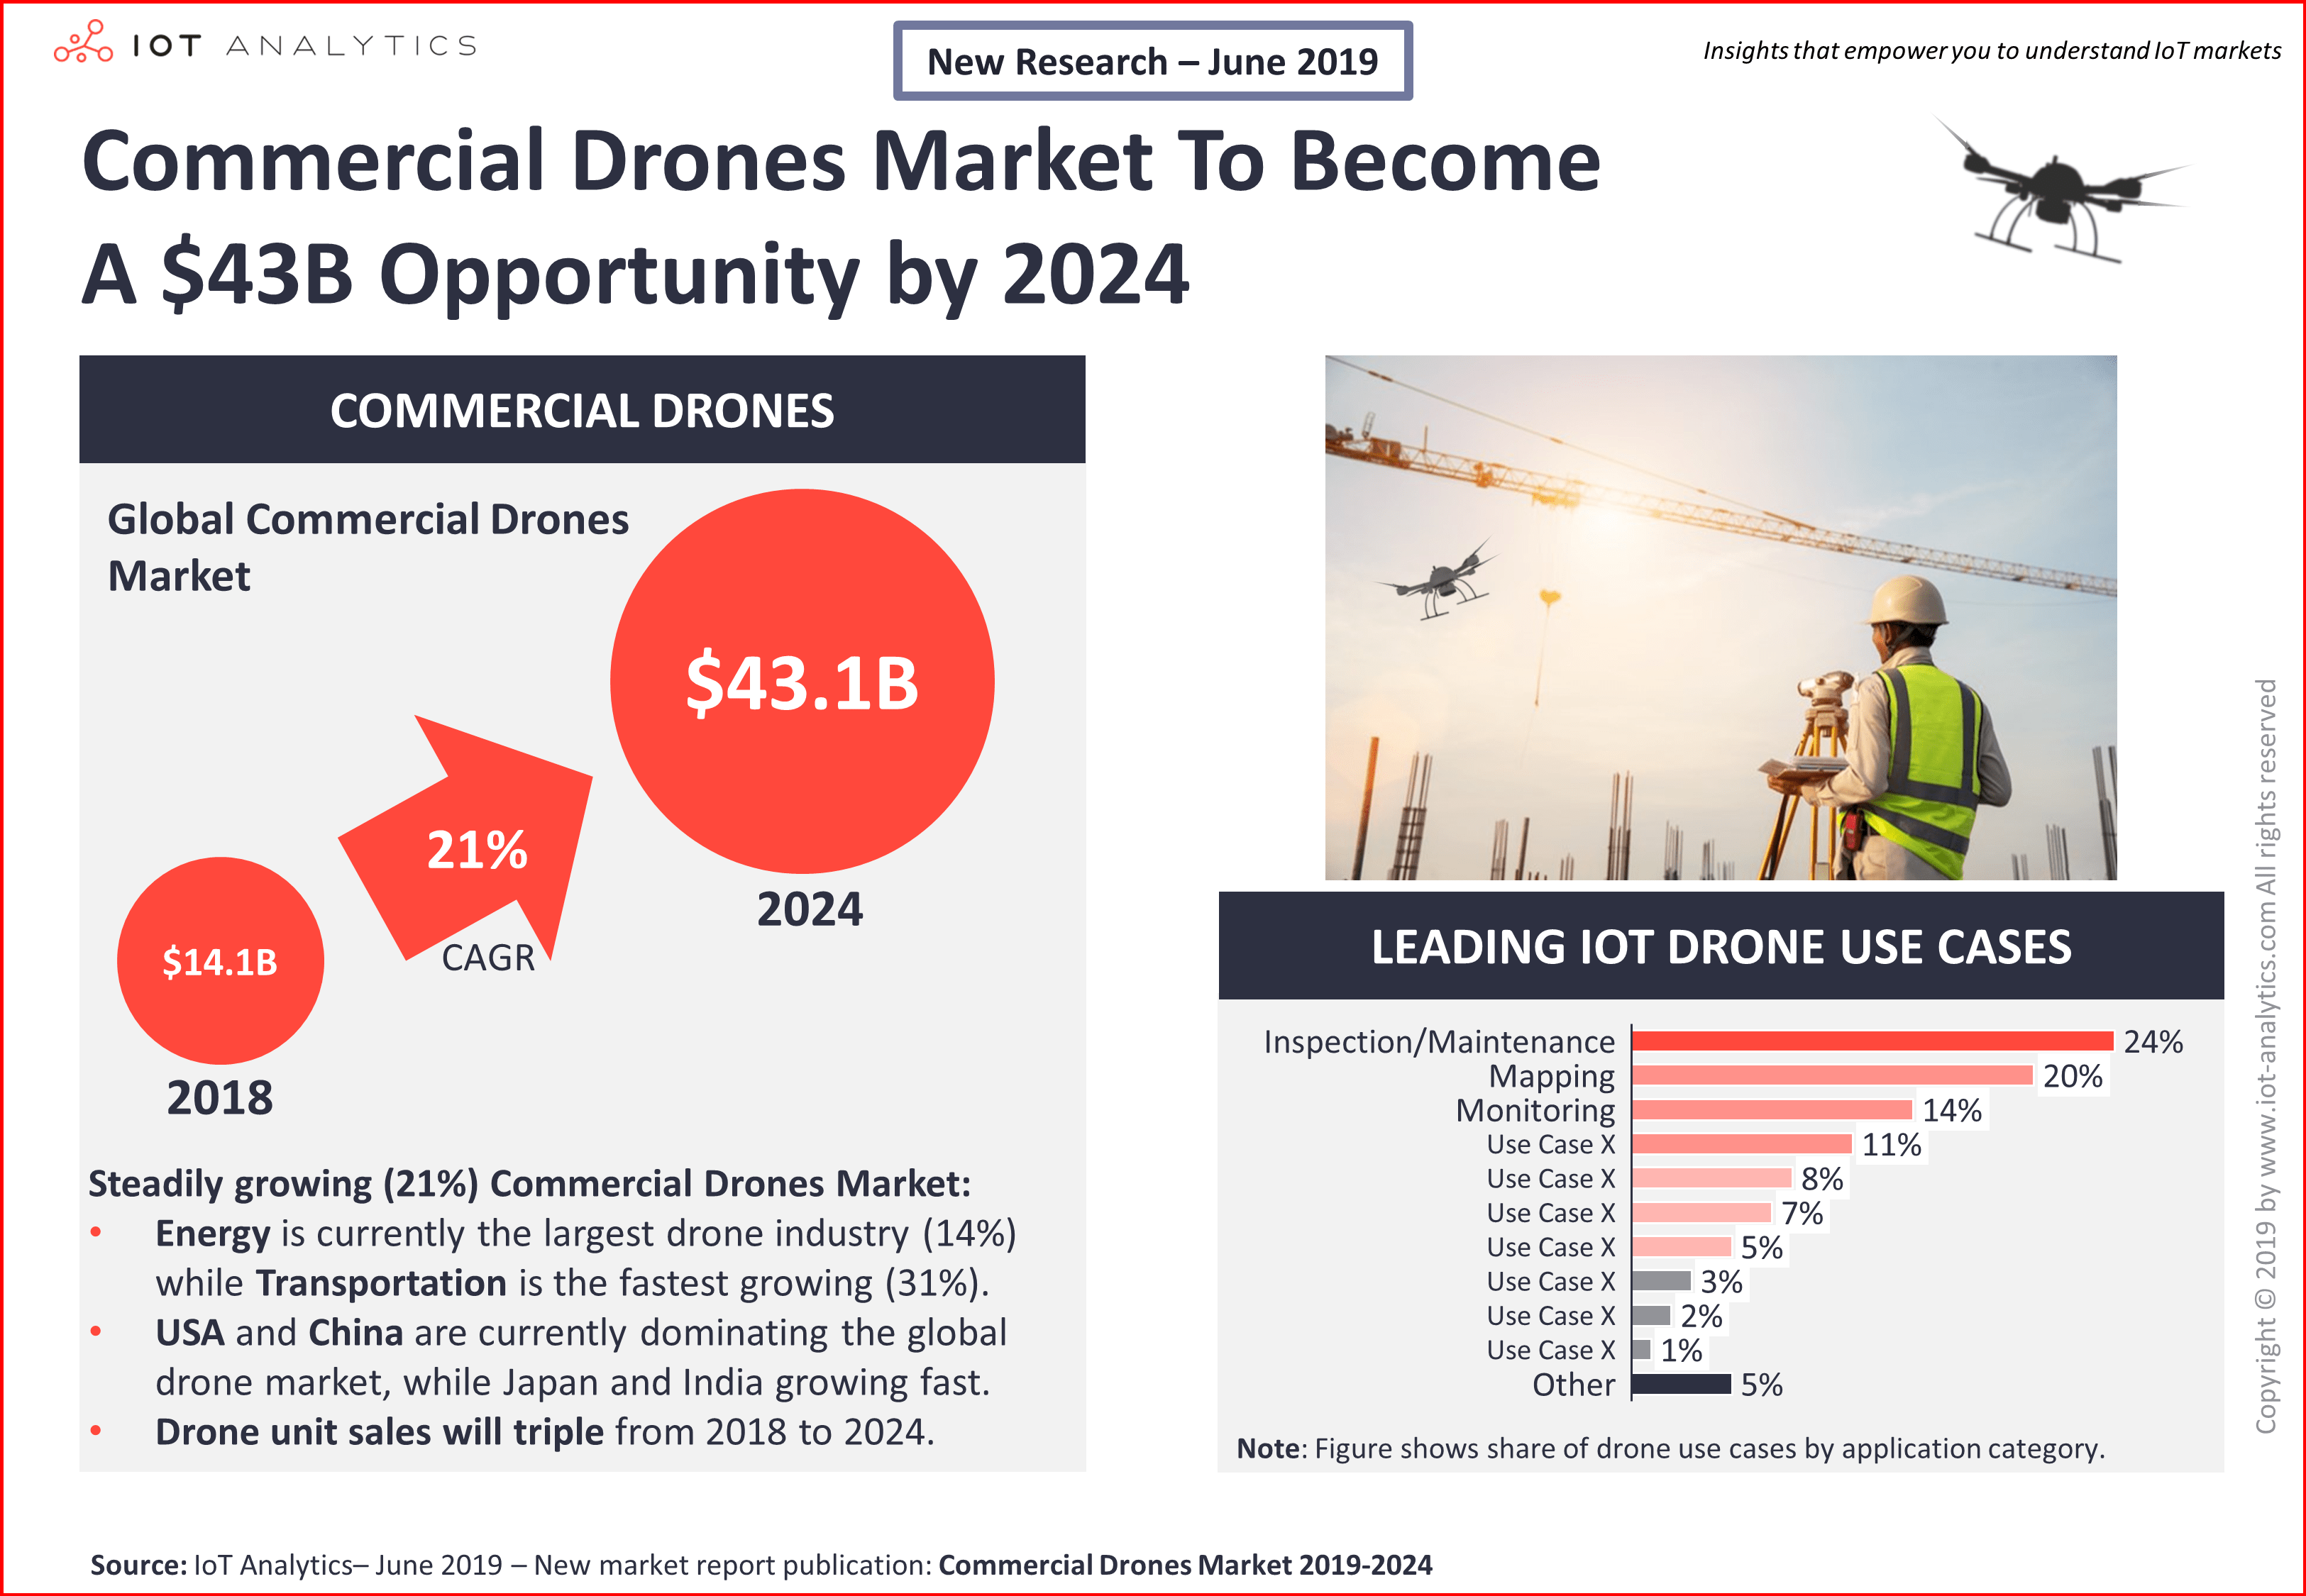 Commercial Drones Market Report 2019 - 2024 - Press release  - Commercial drones market report 2019 2024 press release min - A $43B opportunity by 2024